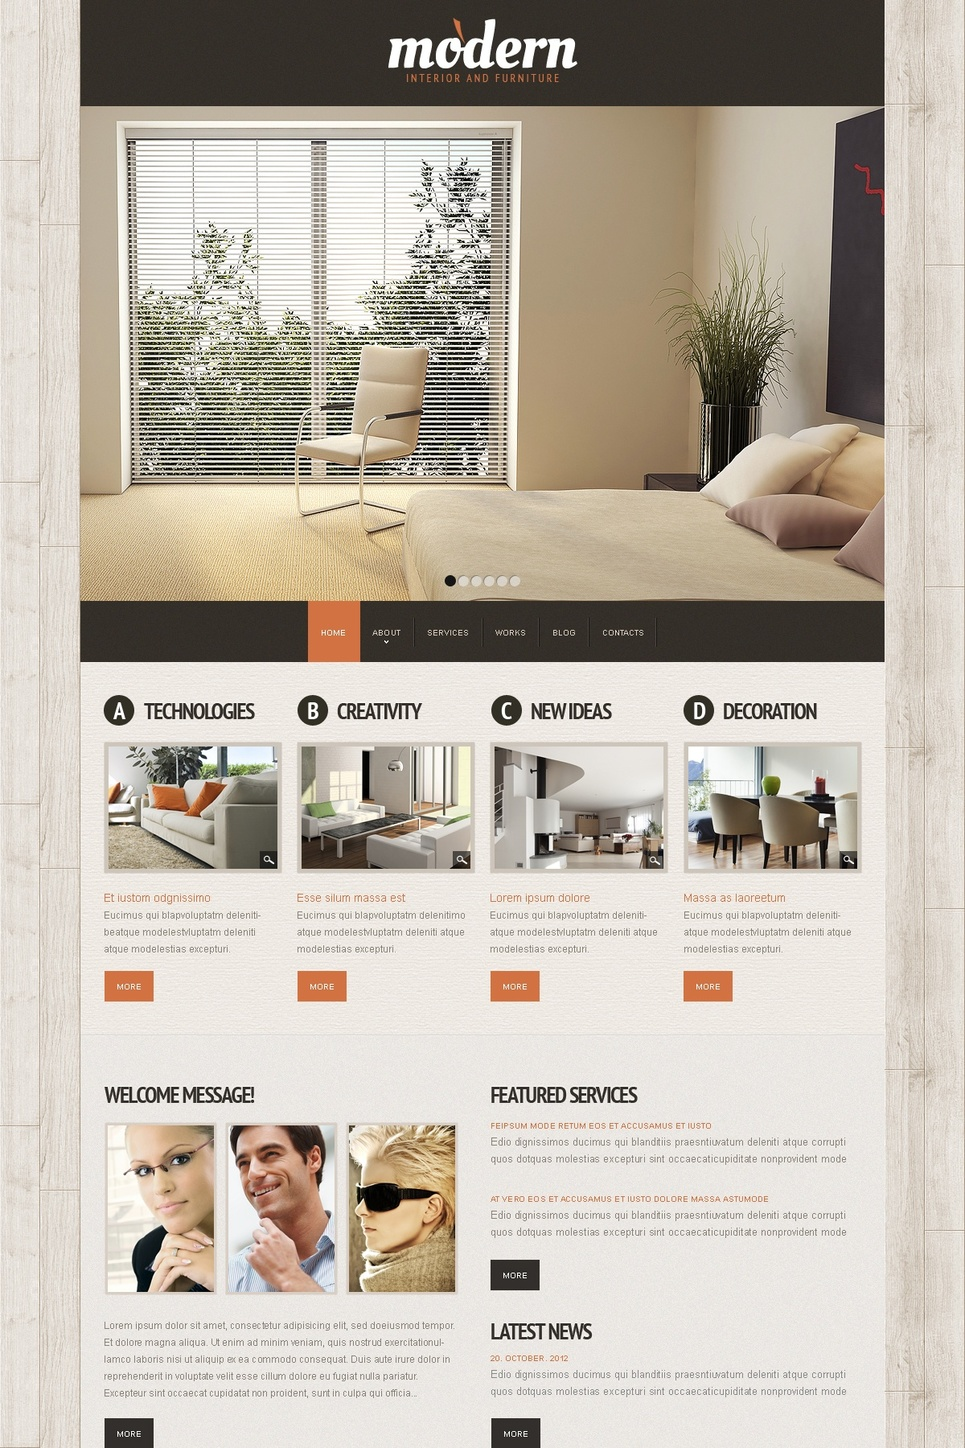 Wood Textured Website Template for Interior Designers - image